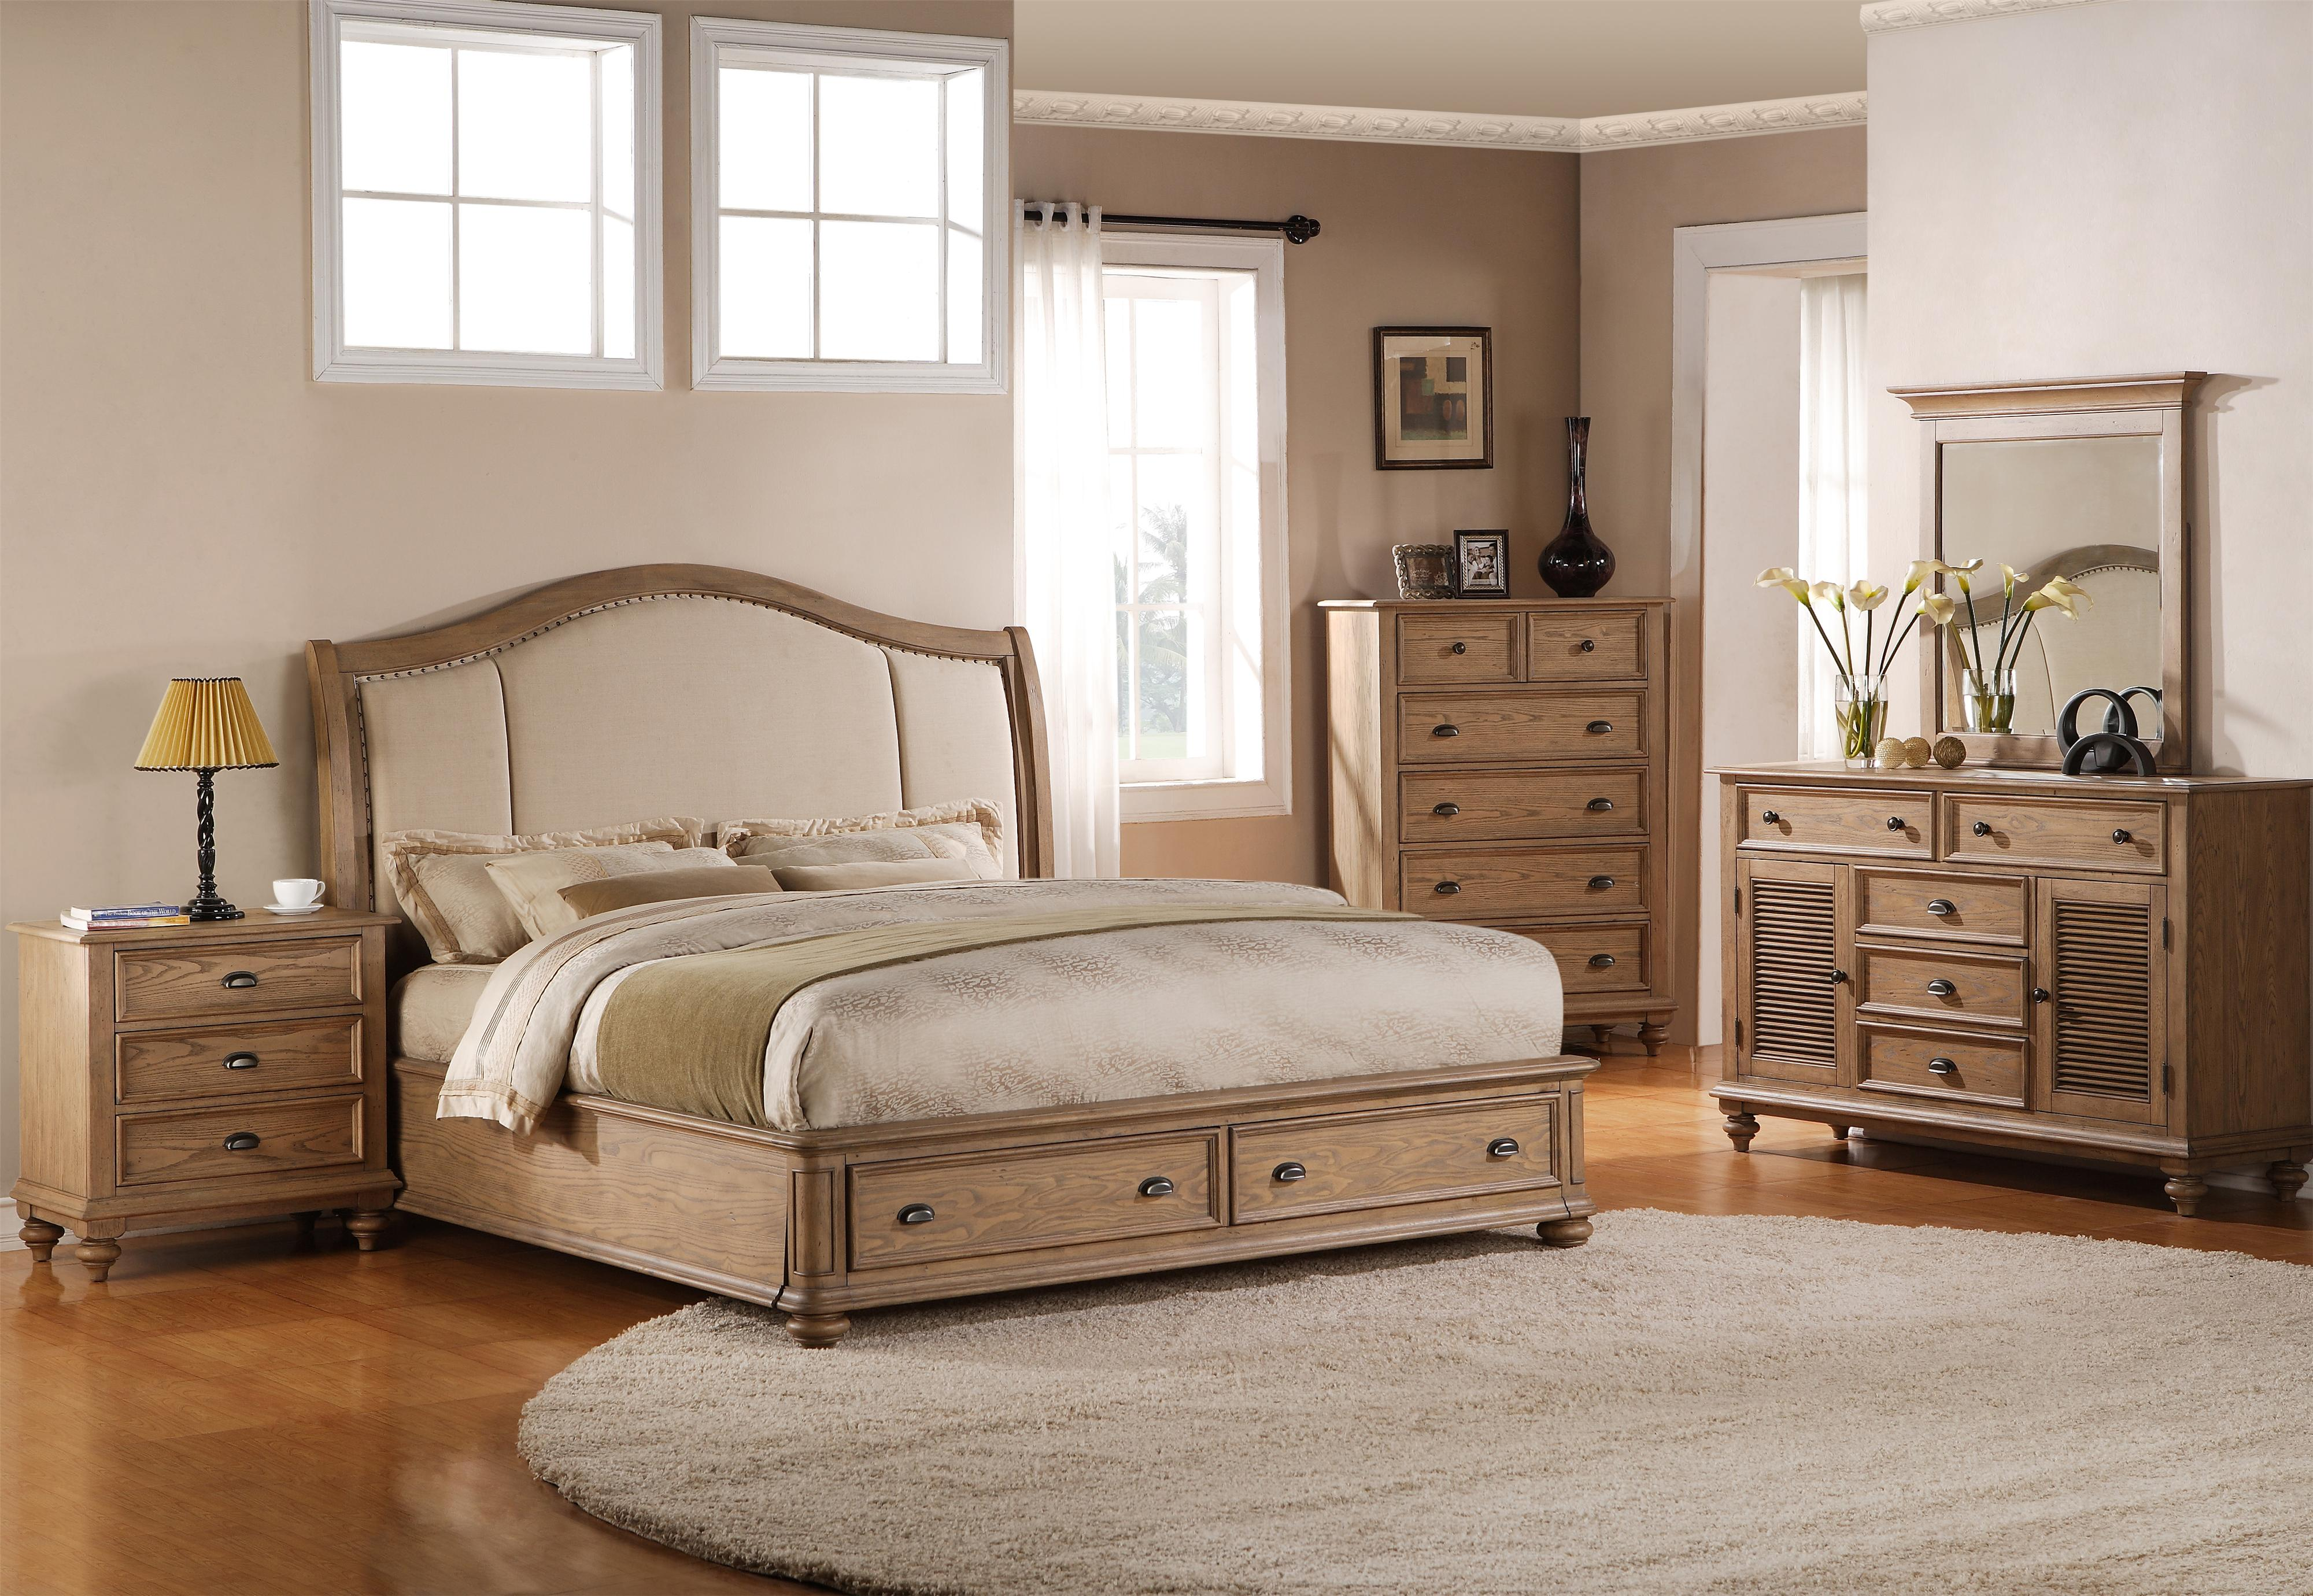 Riverside Furniture Coventry California King Bedroom Group - Item Number: 32400 C K Bedroom Group 9